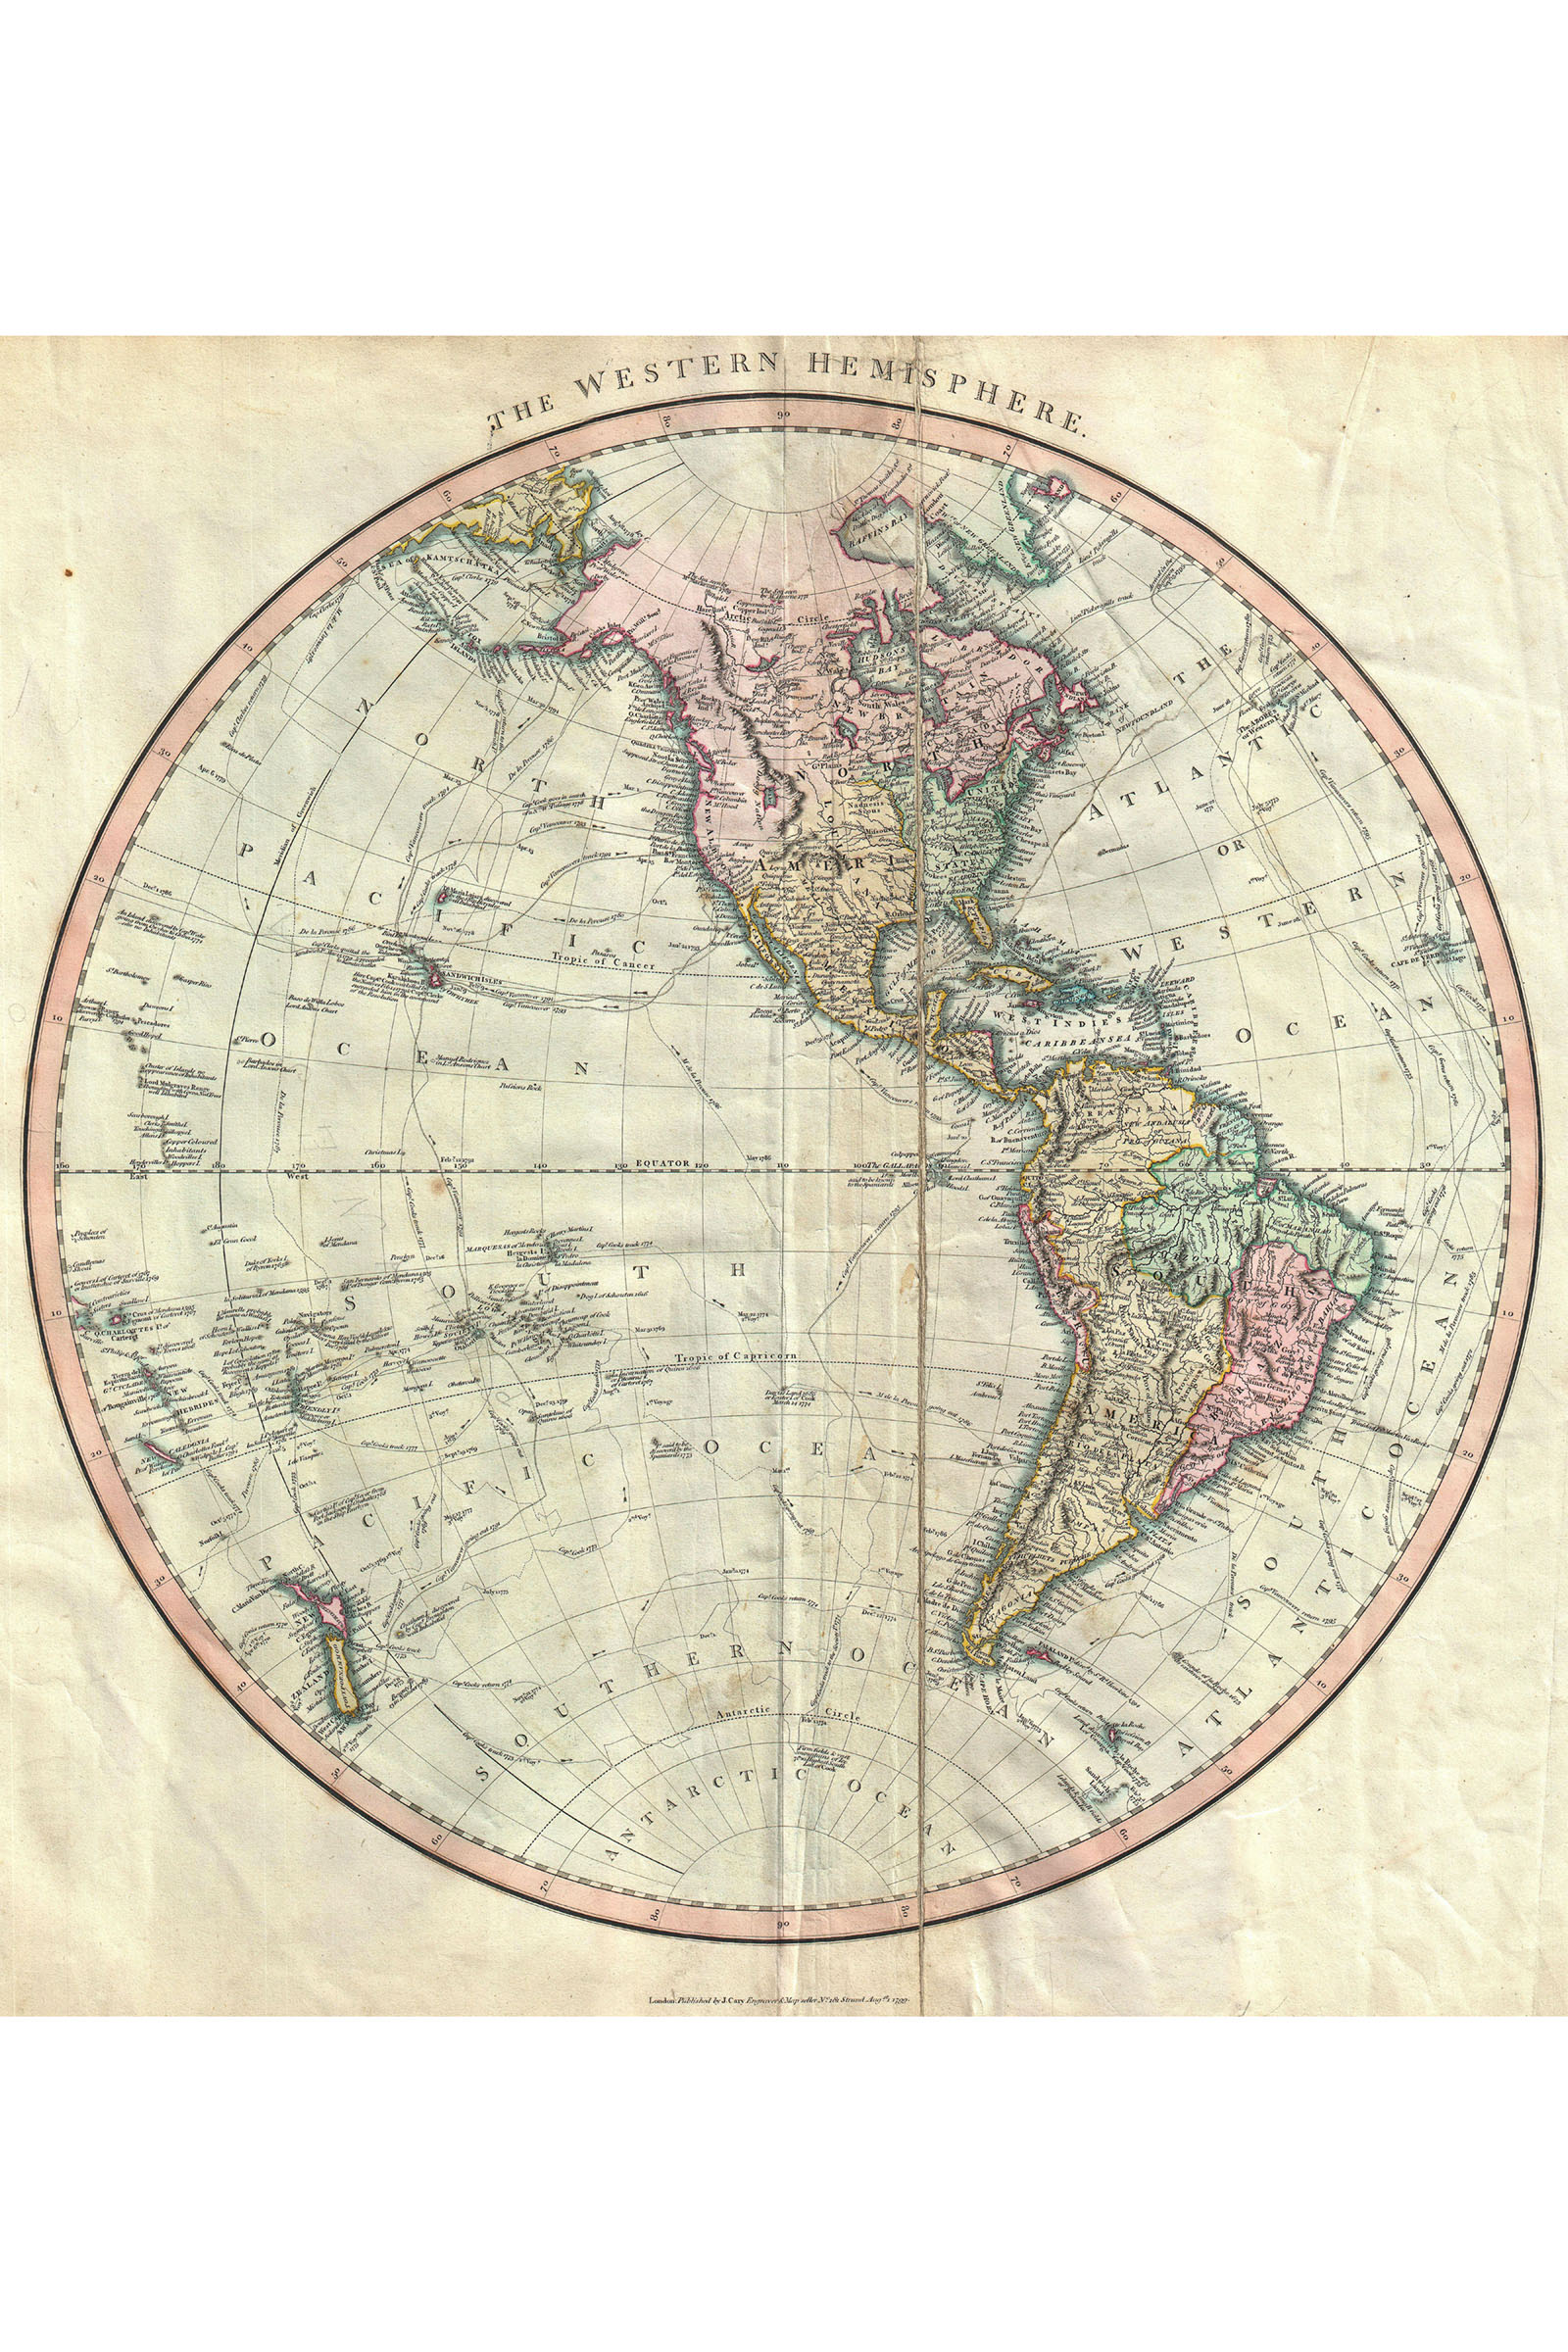 Western Hemisphere Historic Map By Cary